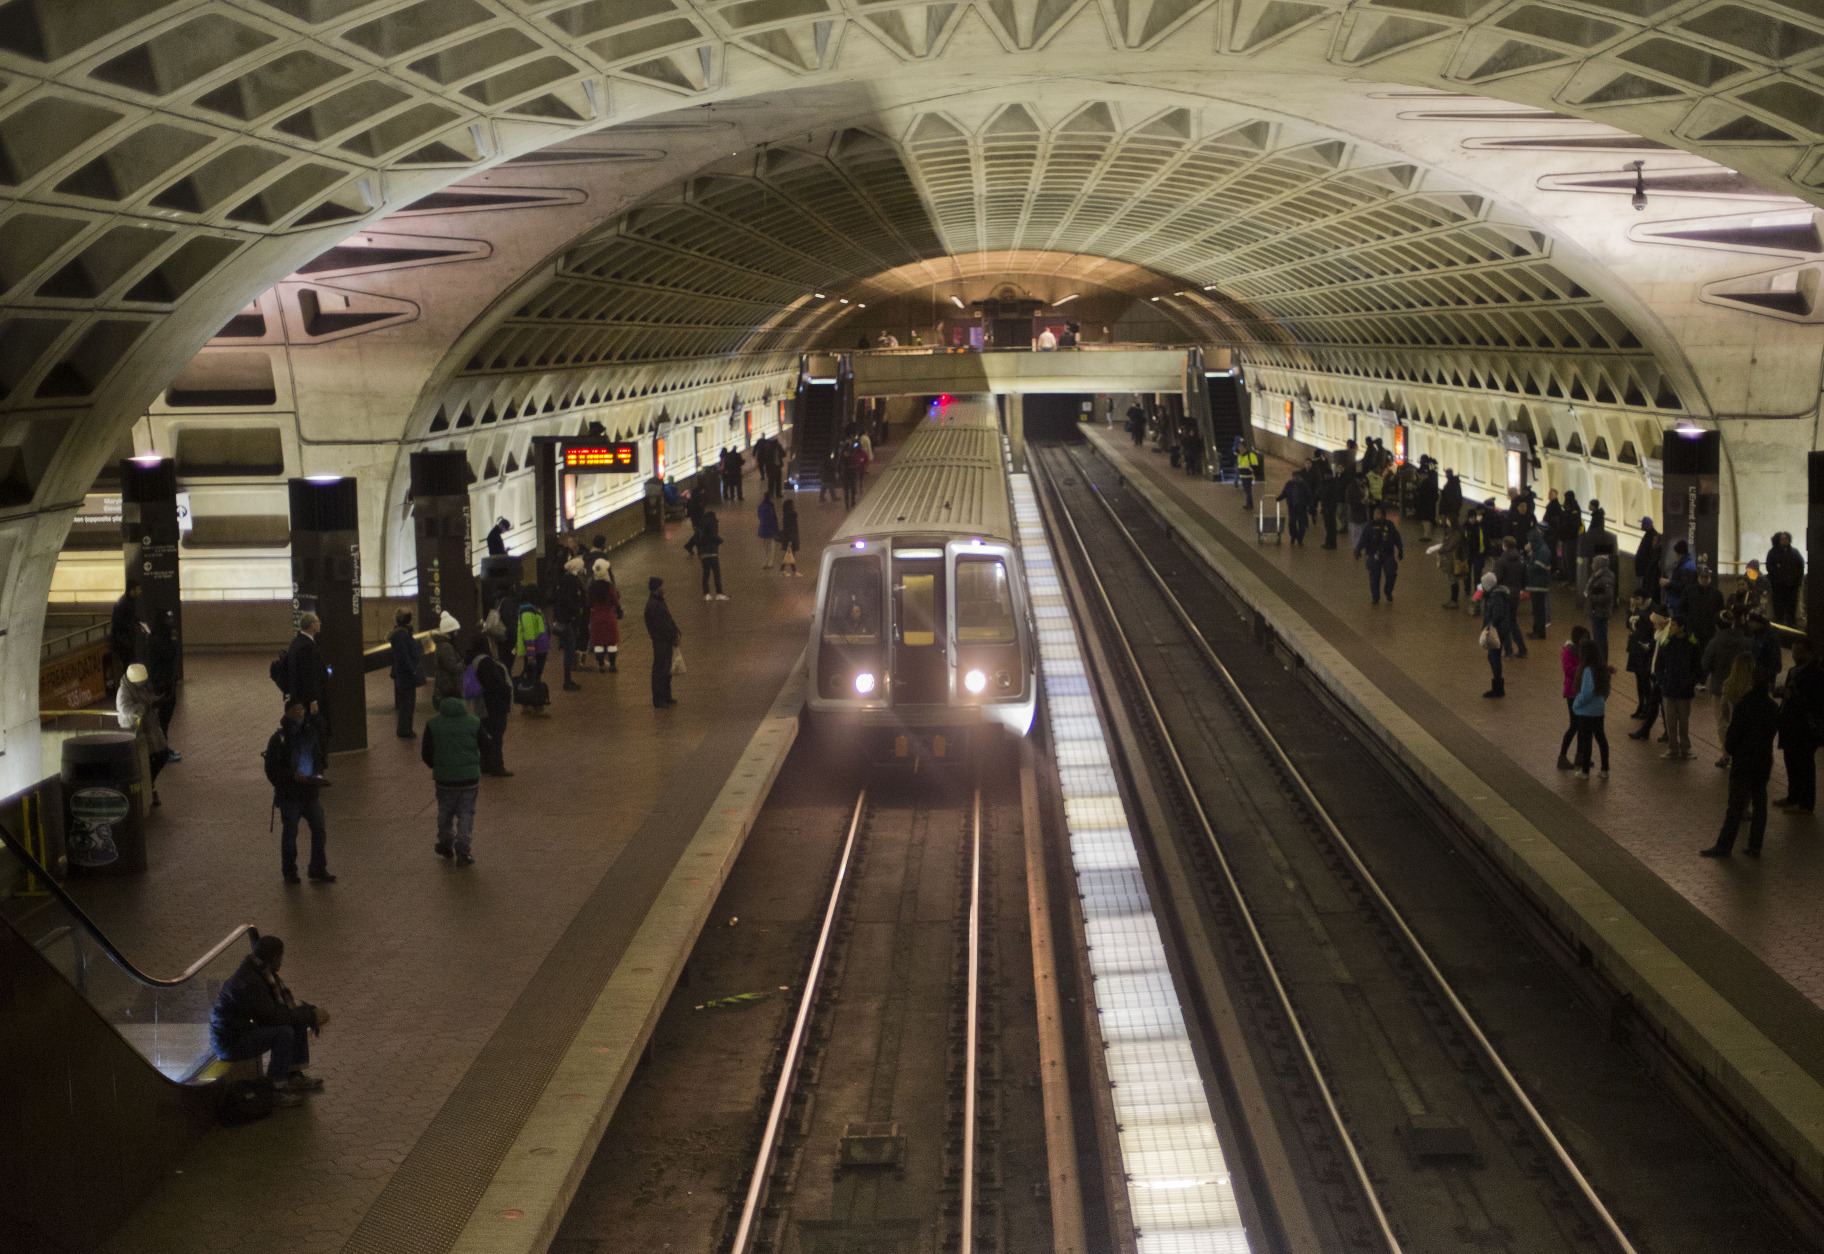 Metro union chief knocks management over safety